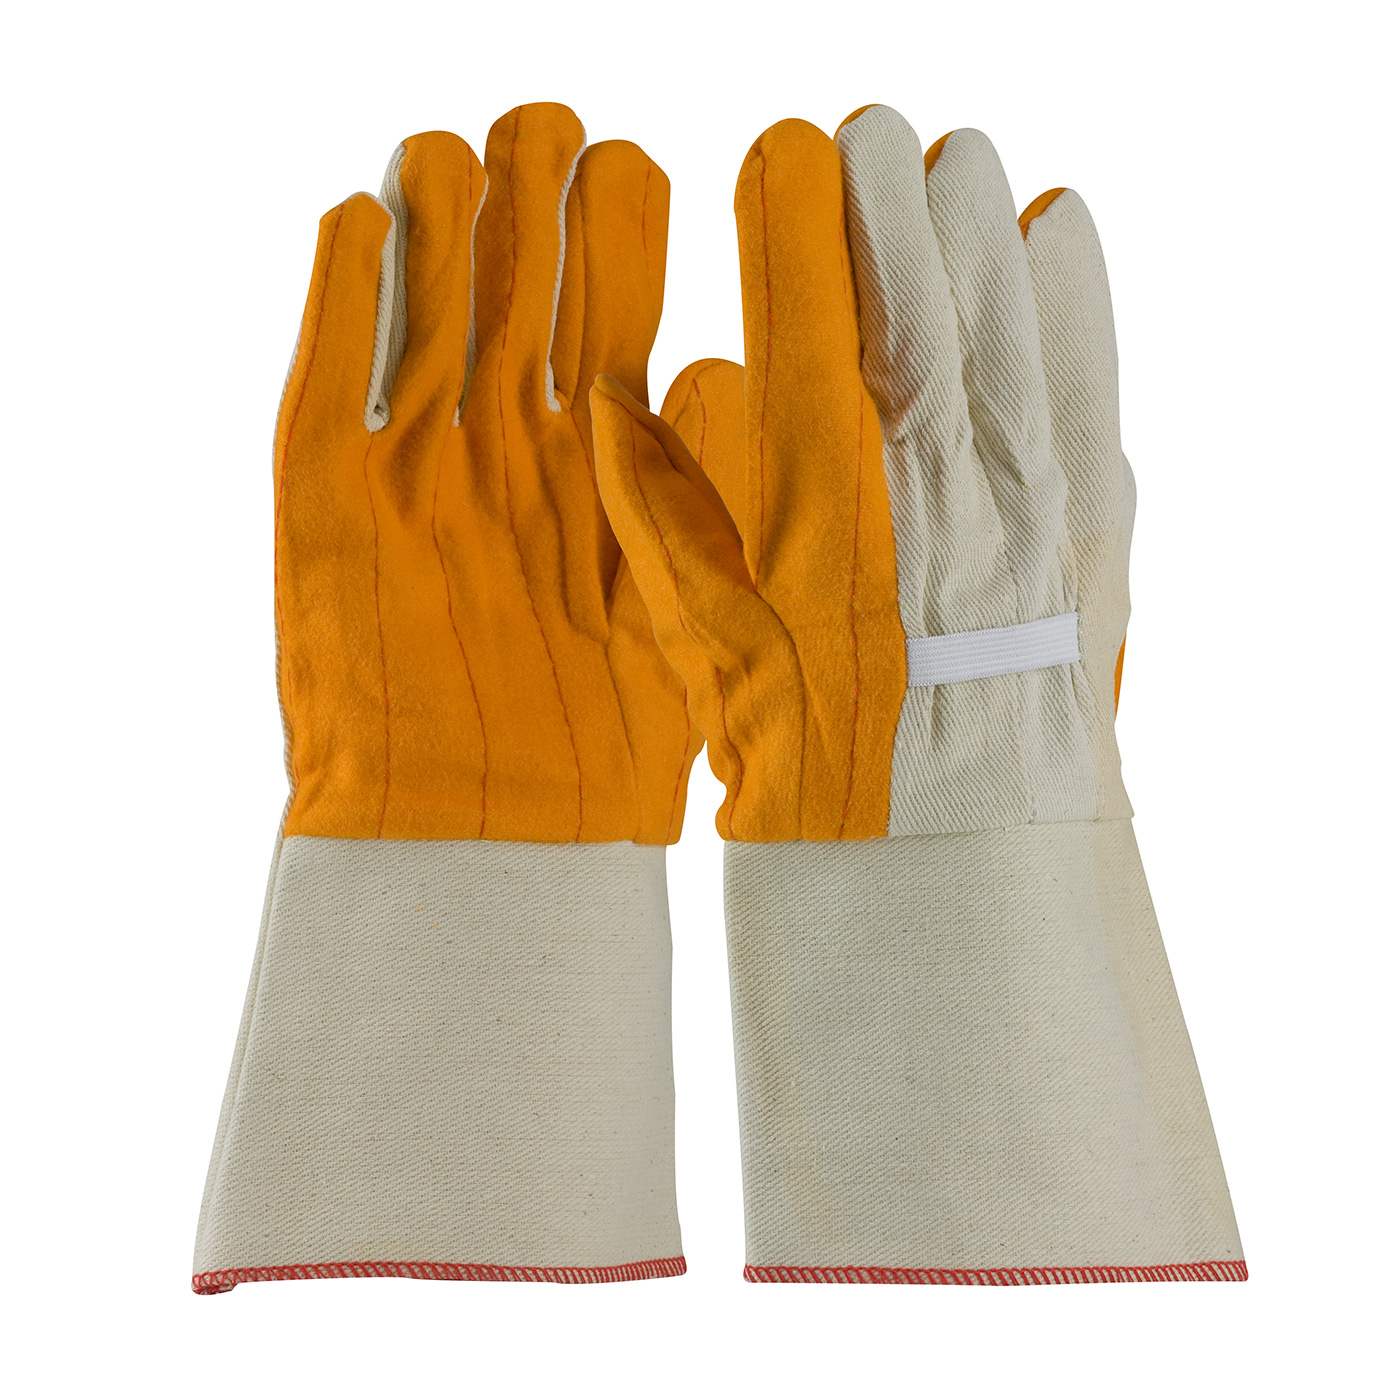 Premium Grade Cotton Chore Glove with Double Layer Palm/Back and Nap-out Finish - Rubberized Gauntlet Cuff, Gold, MENS